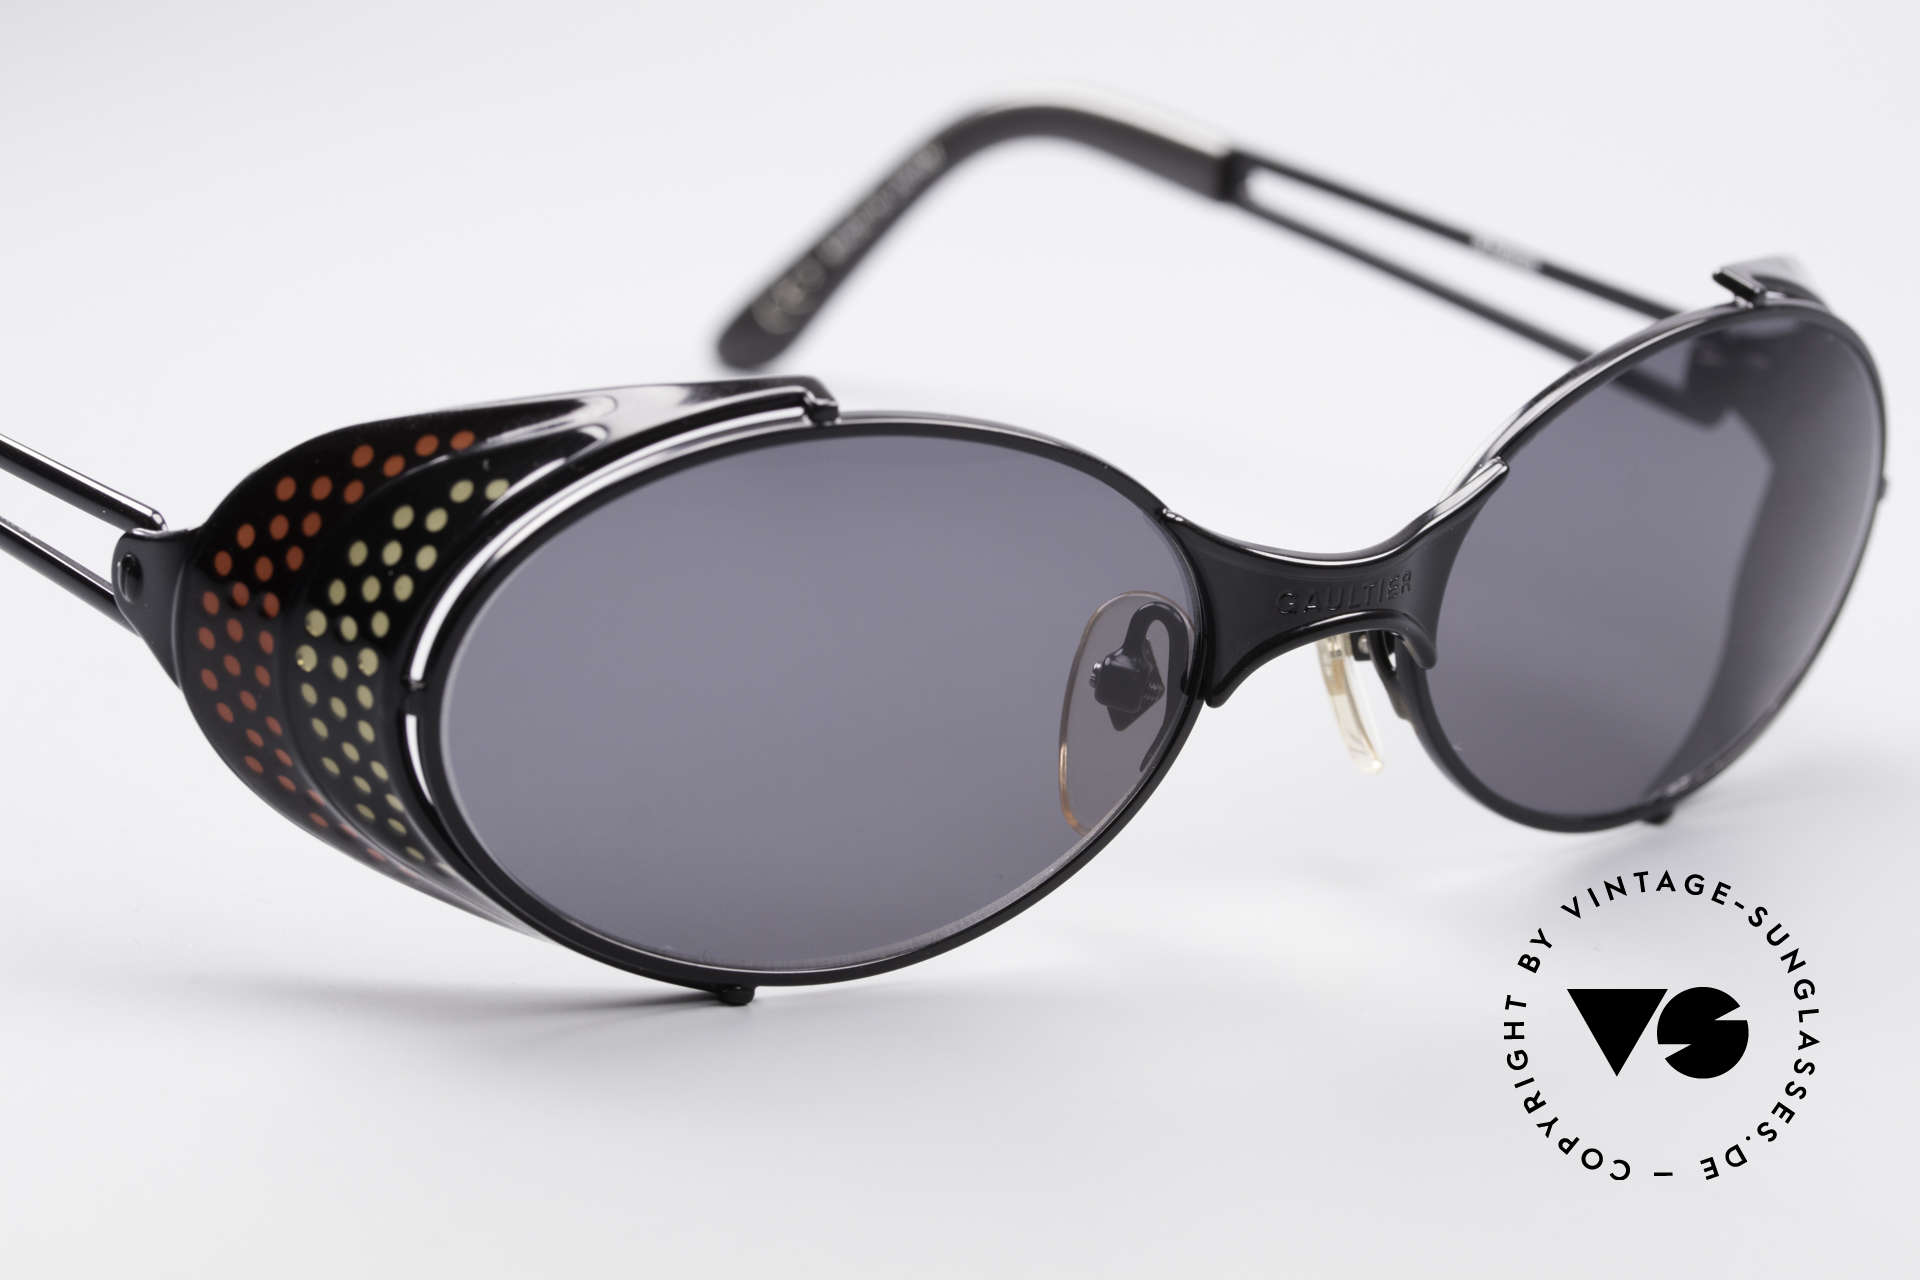 Jean Paul Gaultier 56-7109 JPG Steampunk Sunglasses, unworn rarity (a 'must have' for all art & fashion lovers), Made for Men and Women